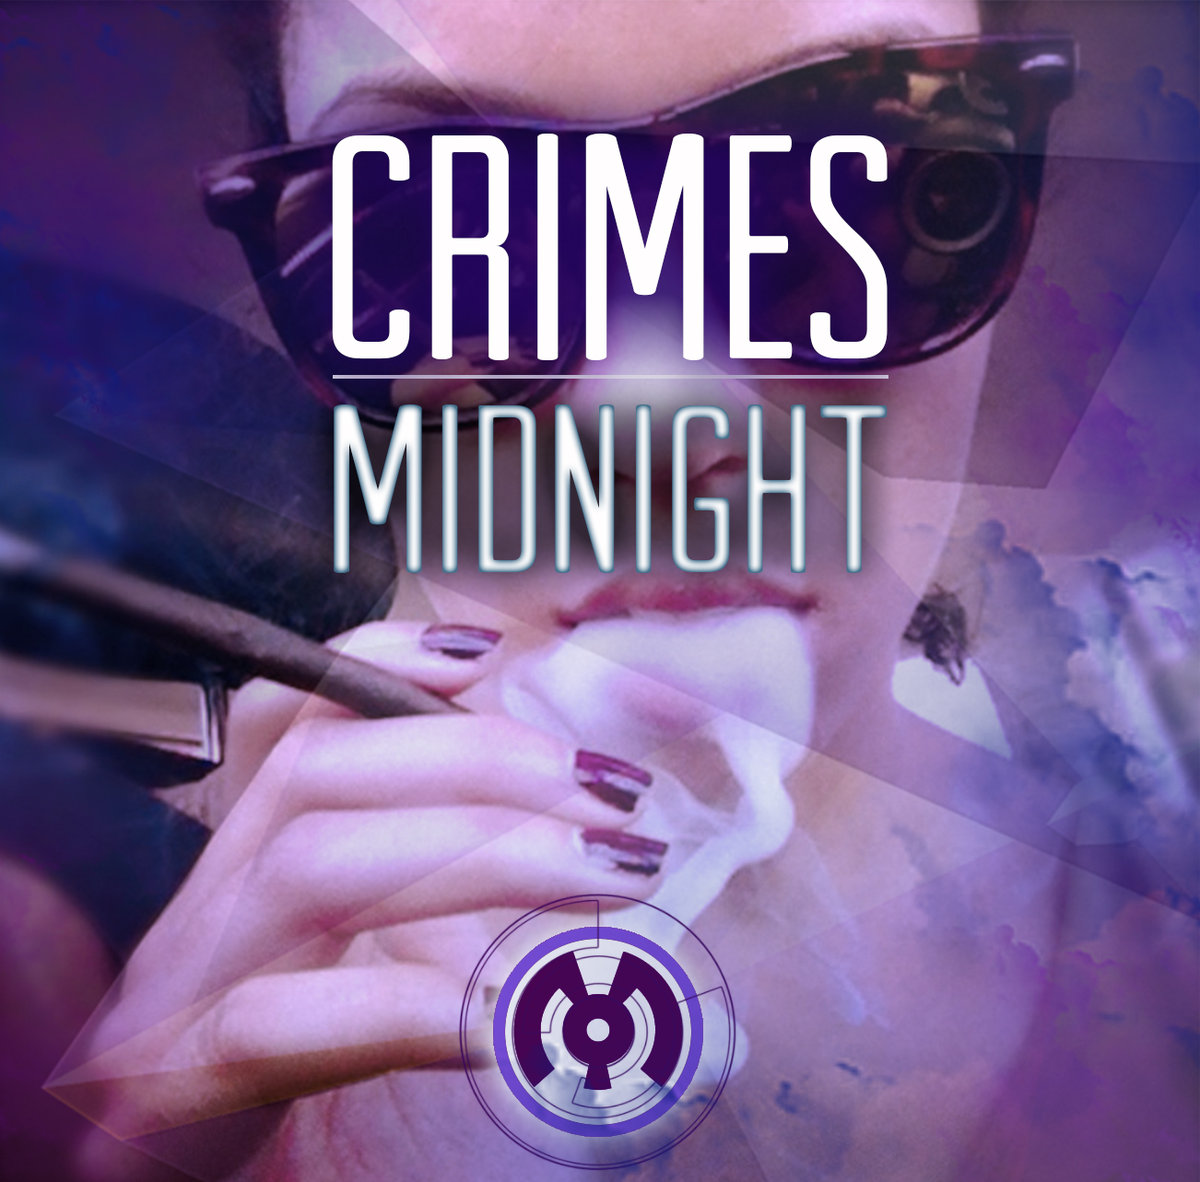 Crimes! - Midnight @ 'Midnight' album (electronic, dubstep)